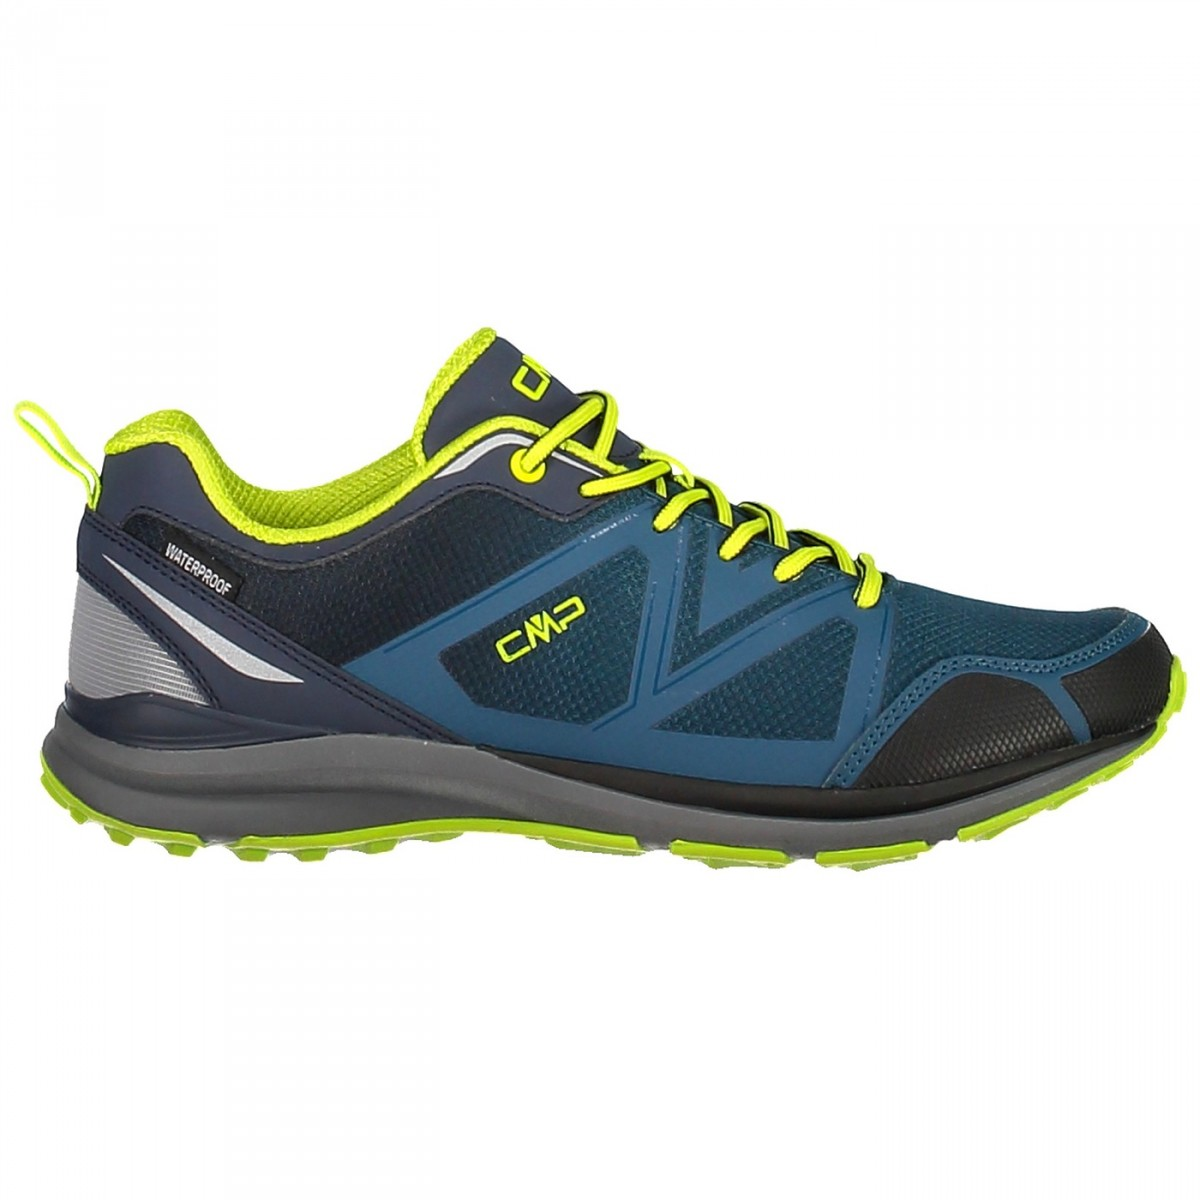 chaussure trail running alya homme chaussures montagne et trekking. Black Bedroom Furniture Sets. Home Design Ideas